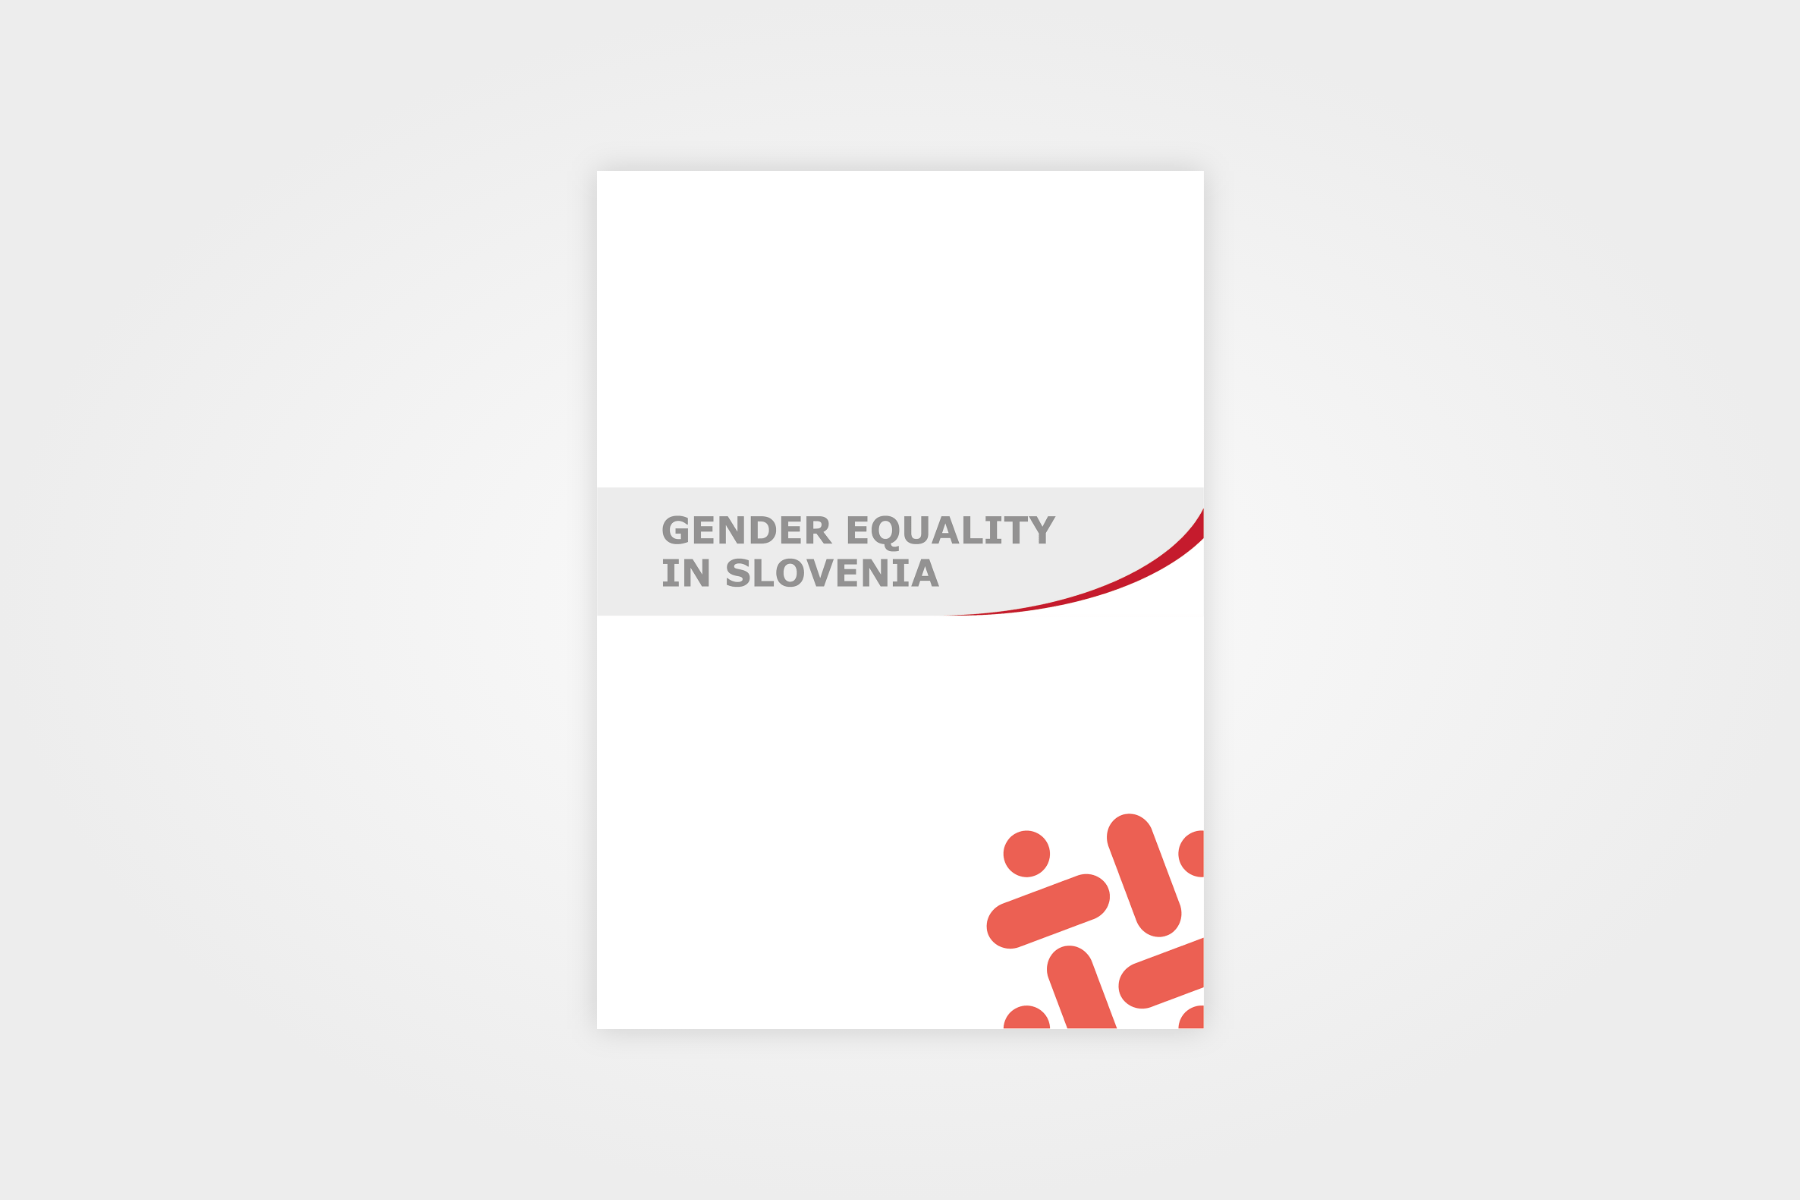 Gender Equality in Slovenia